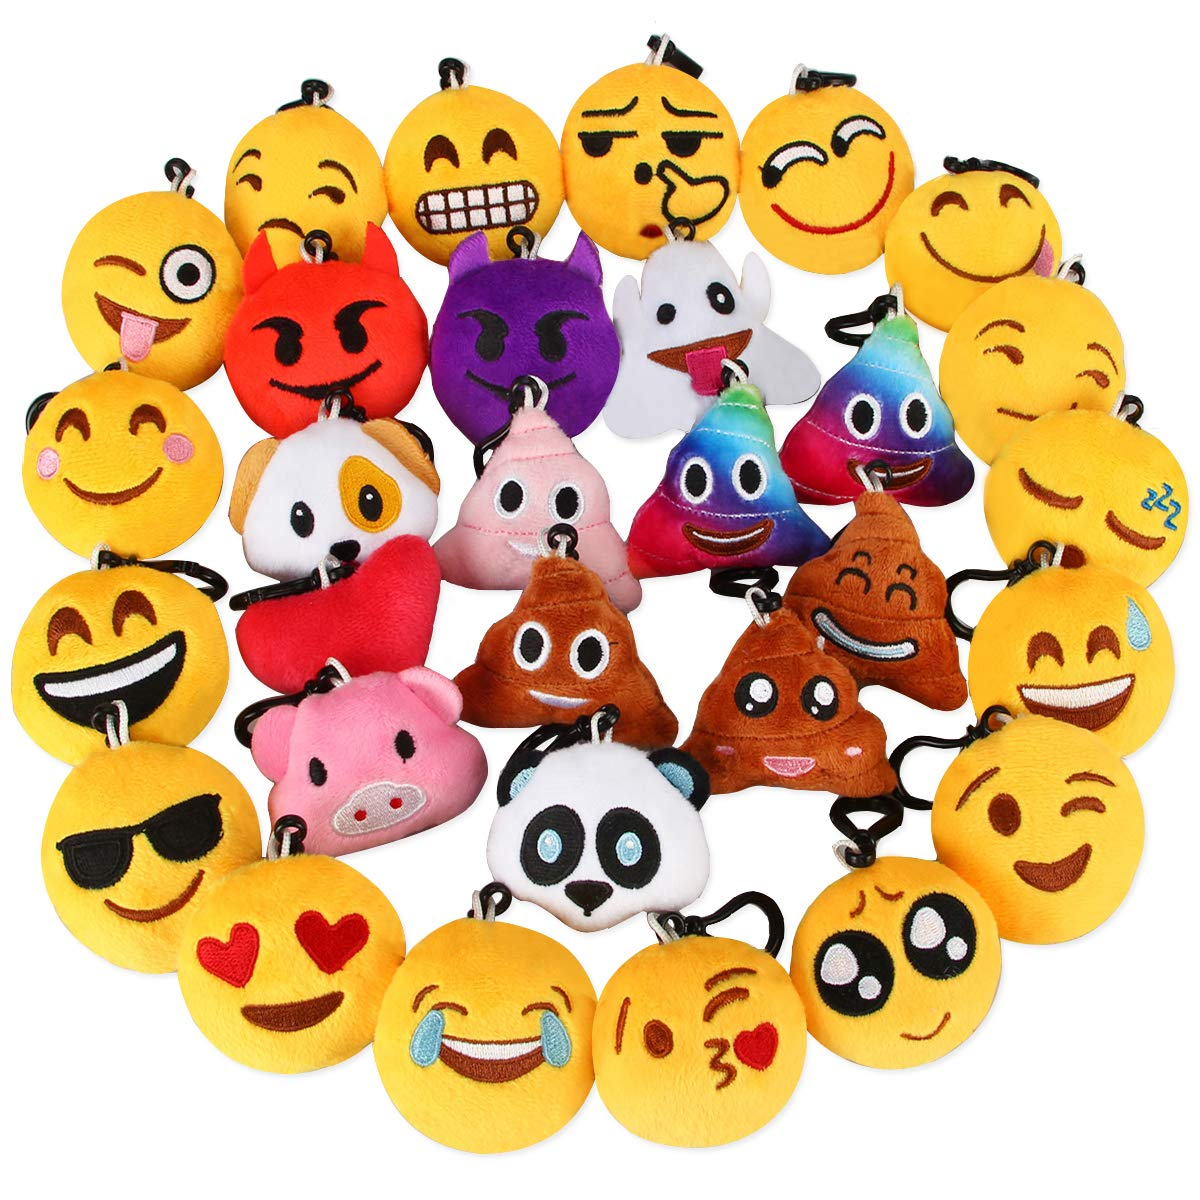 Dreampark Emoji Keychain, Emoji Key Chain Mini Plush Poop Pillows, Party Favors for Kids, Christmas / Birthday Party Supplies 2'' Set of 30 by Dreampark